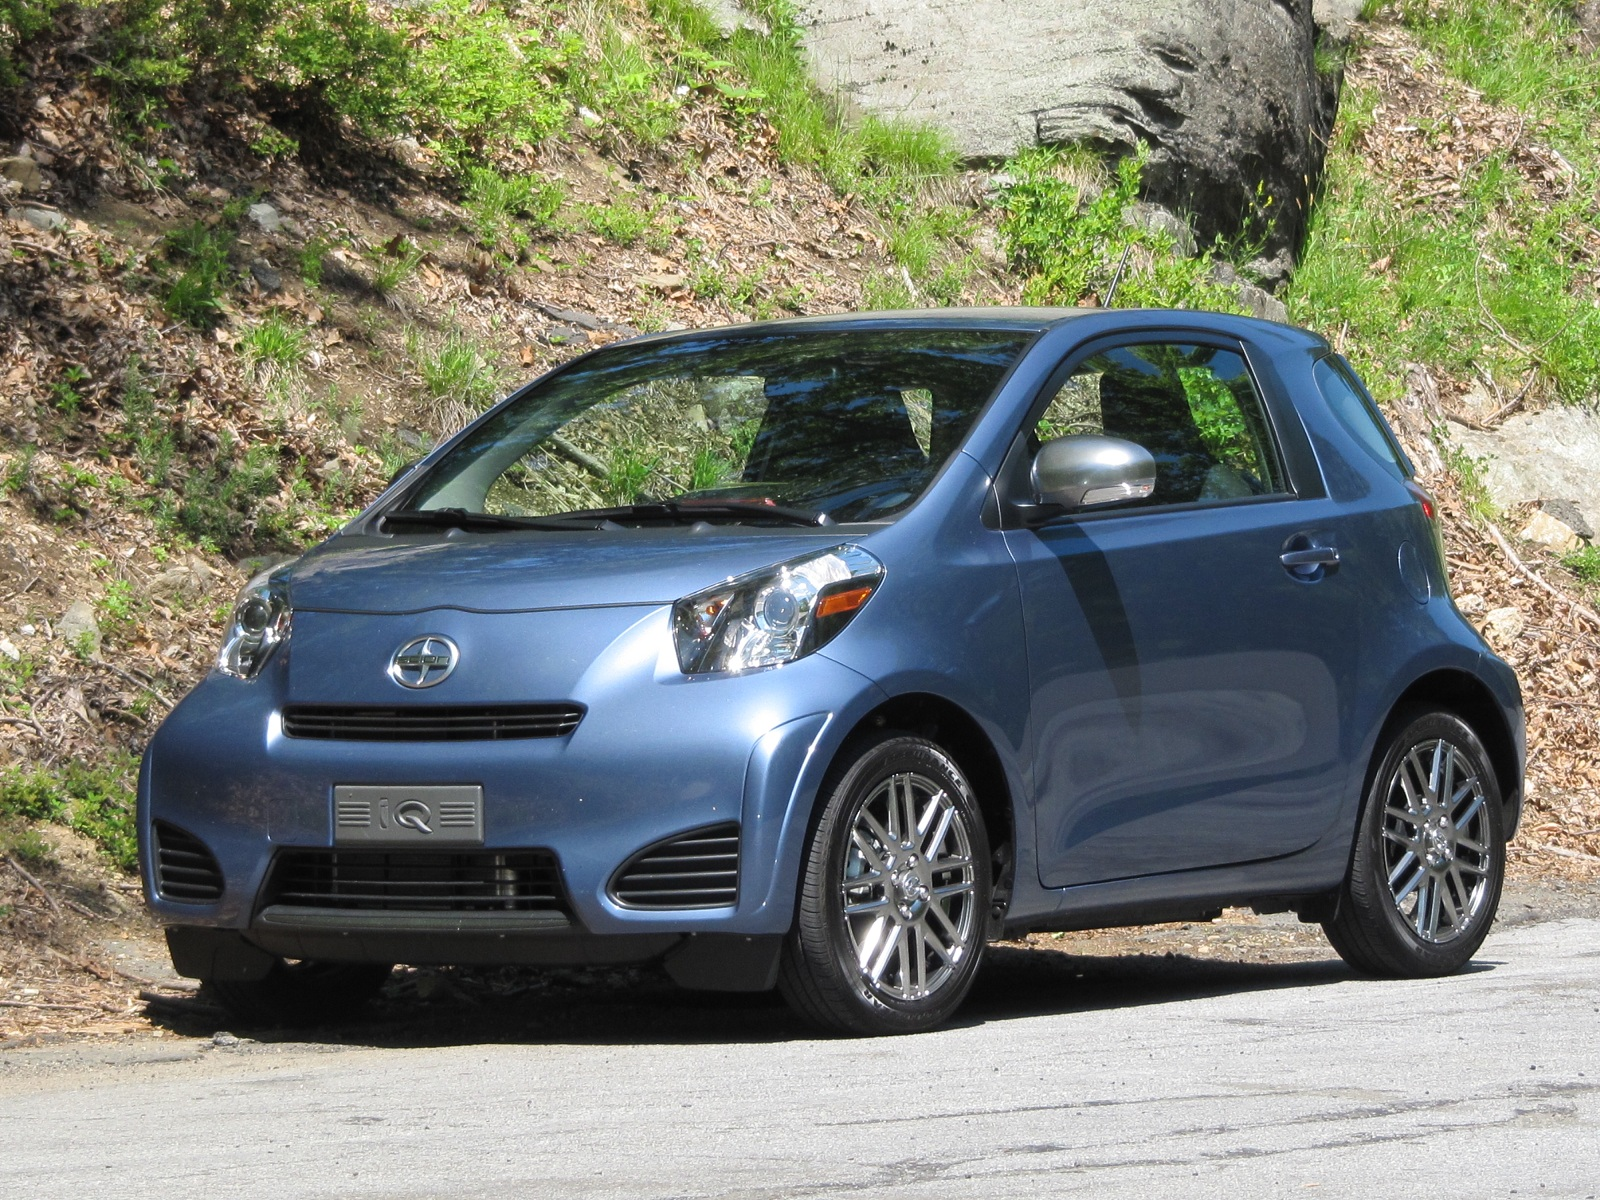 2012 Scion IQ, 2012 Honda CR-Z: Same Gas Mileage, But Very